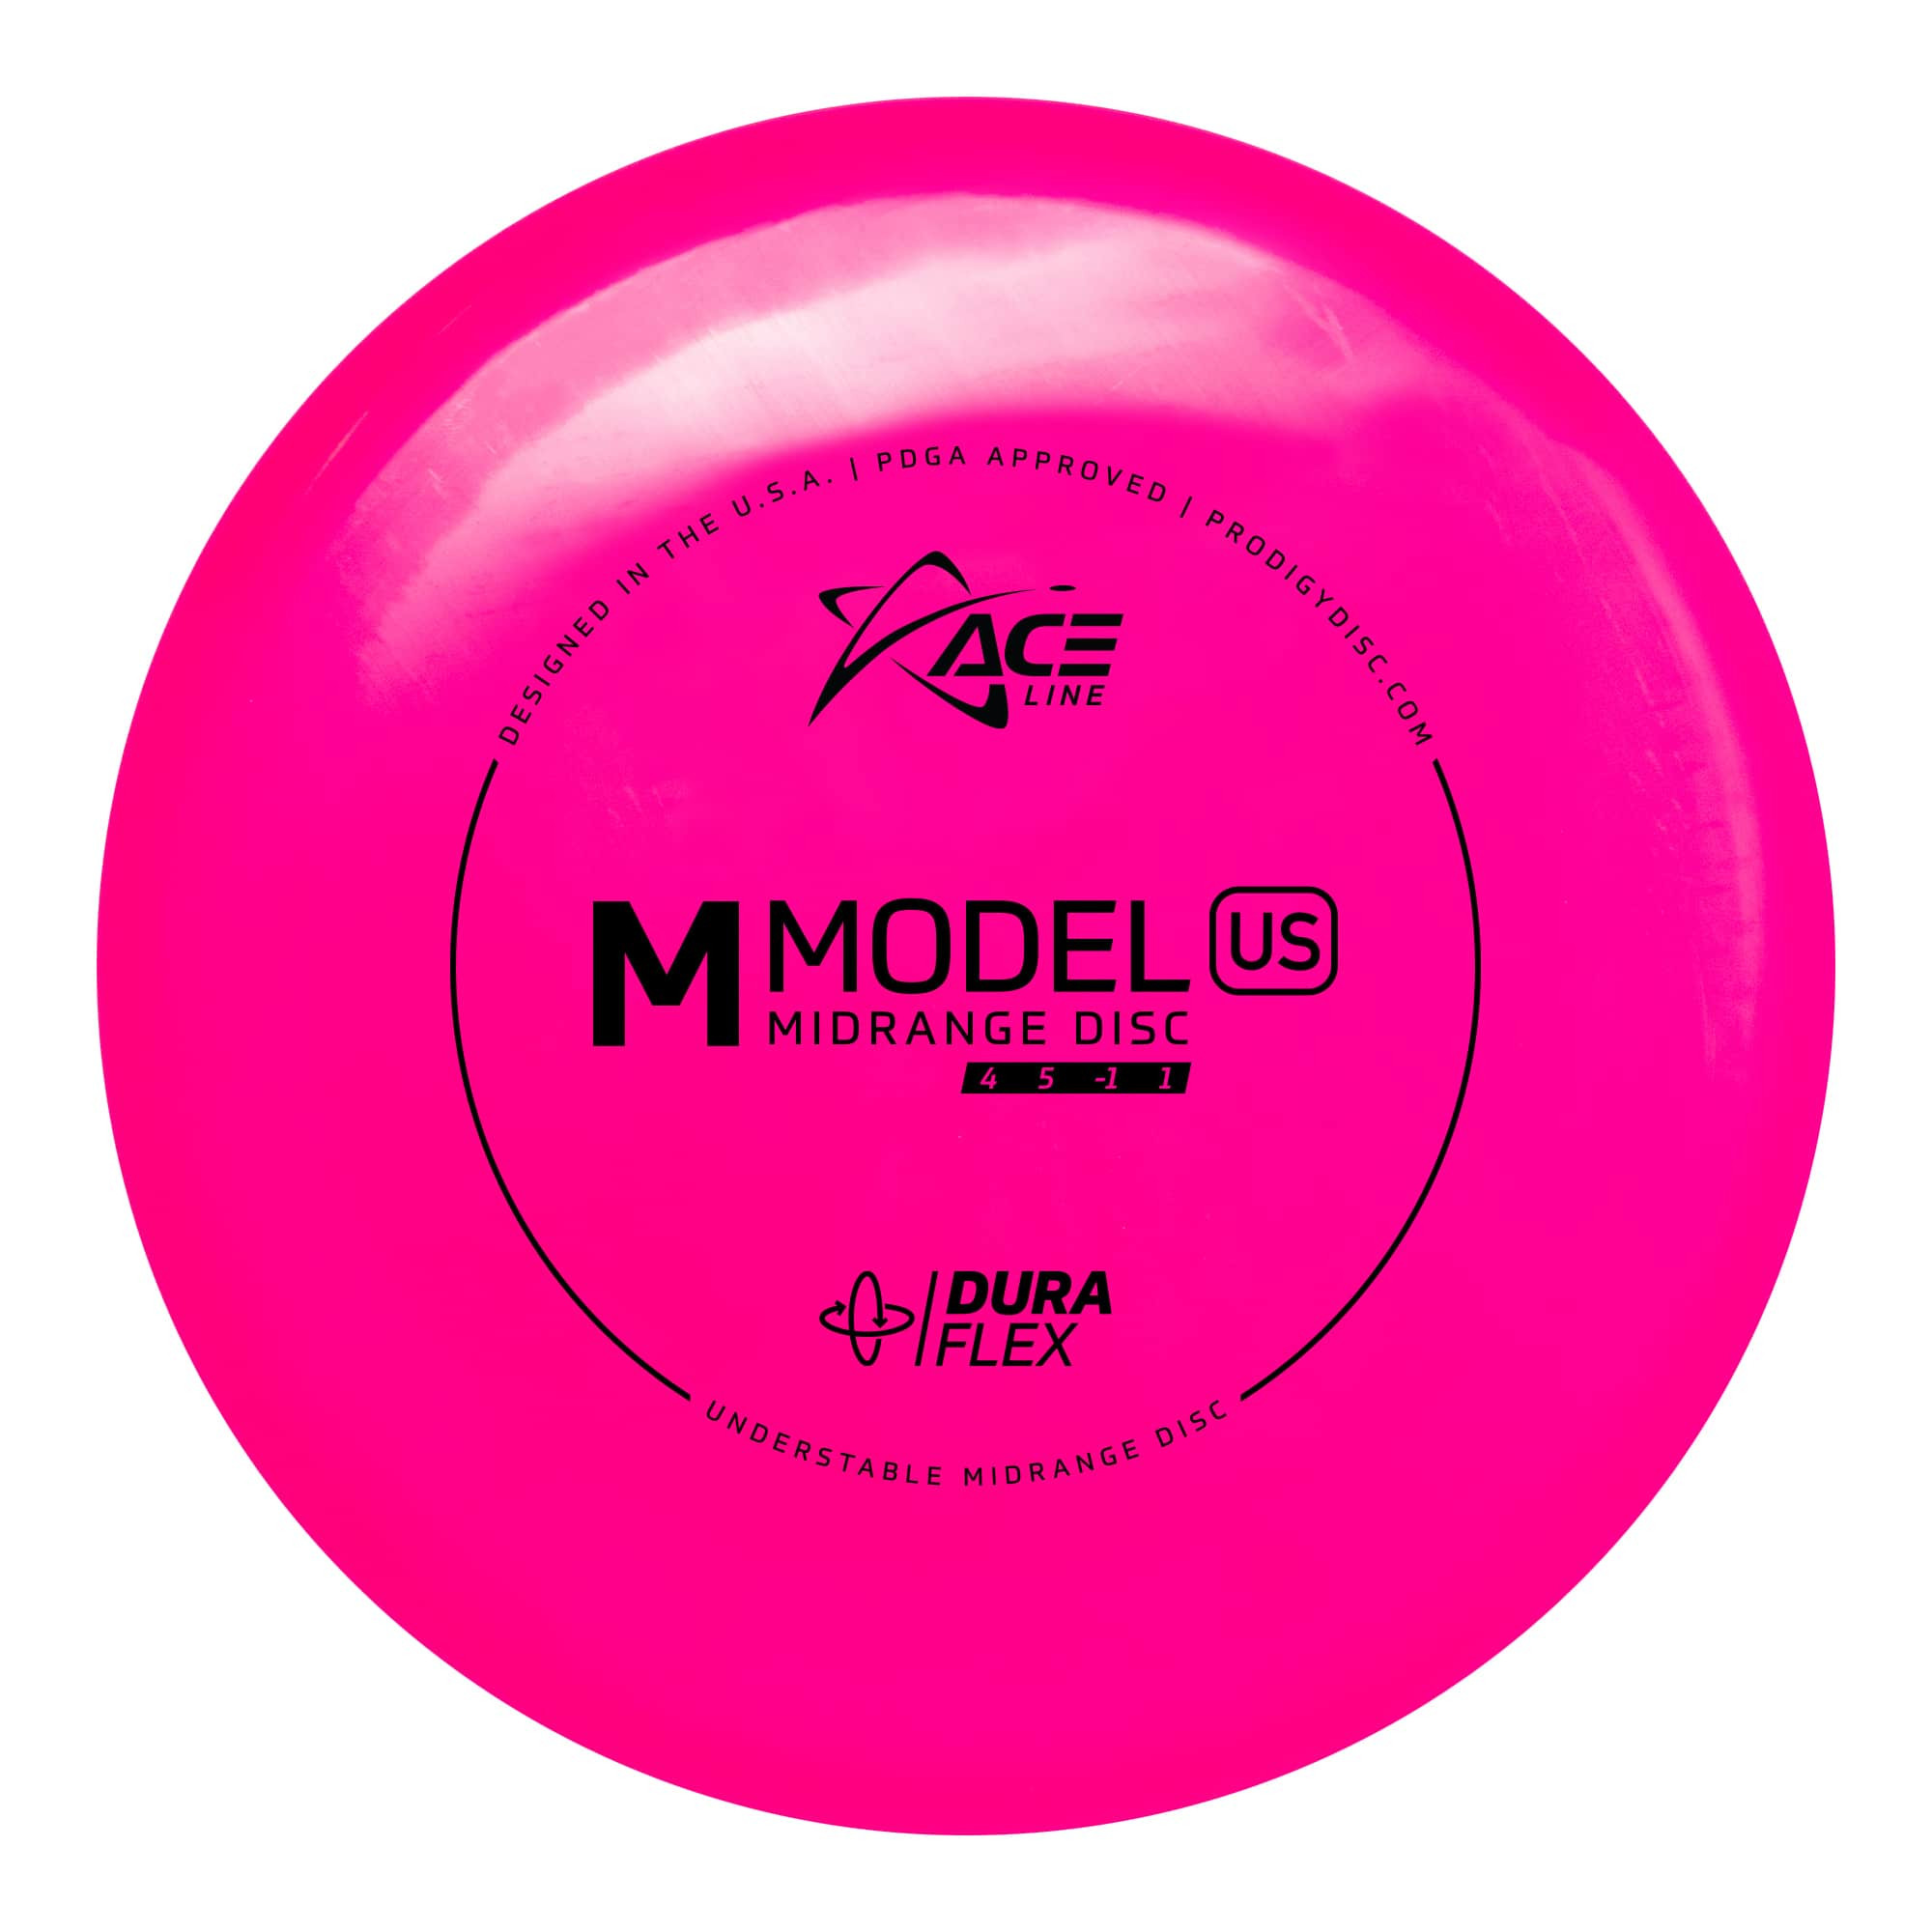 Prodigy Ace Line DuraFlex M Model US